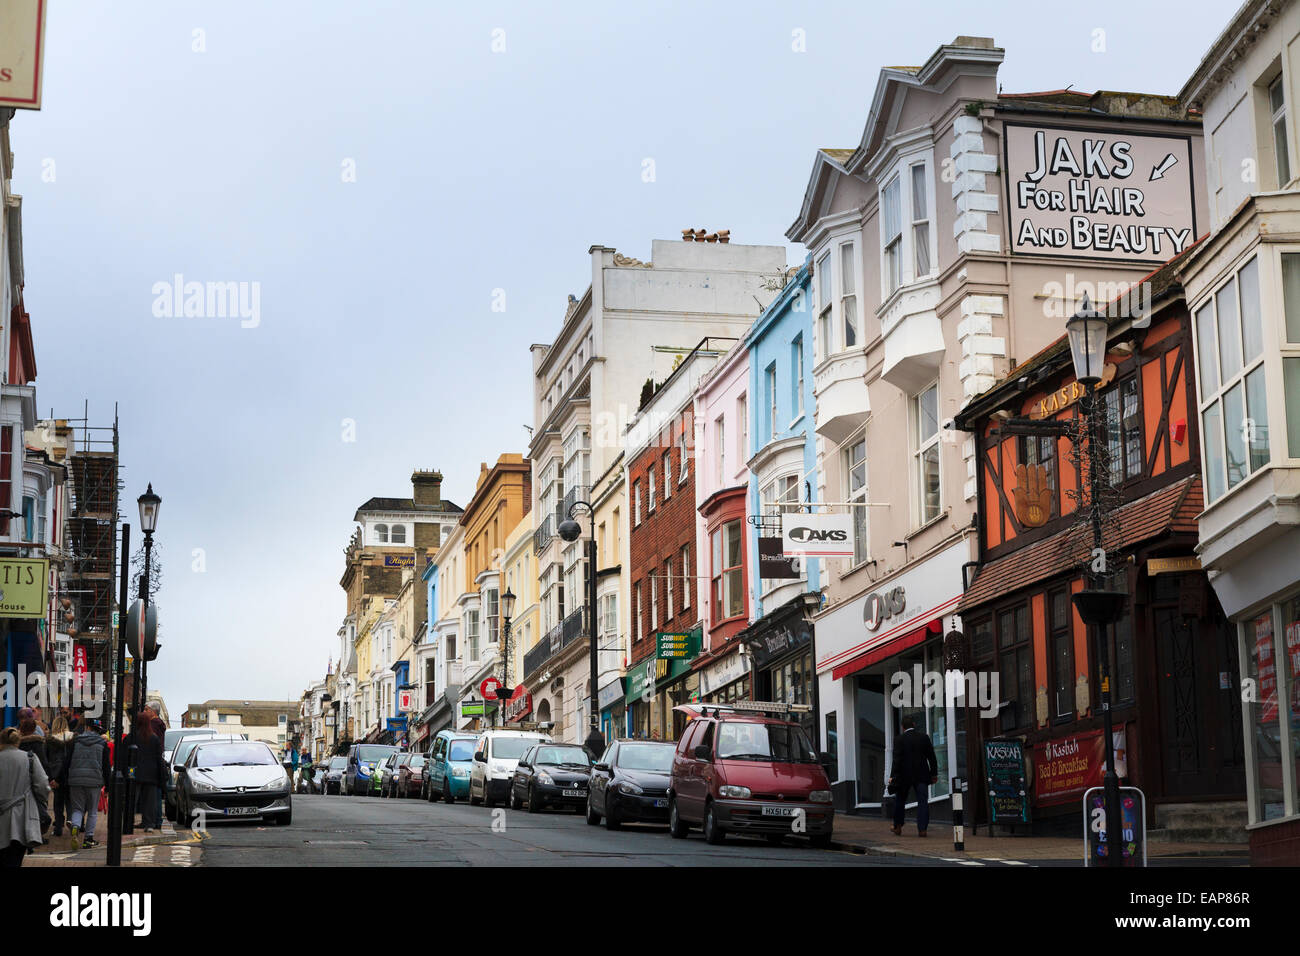 Looking up Union Street Ryde Isle of Wight Stock Photo